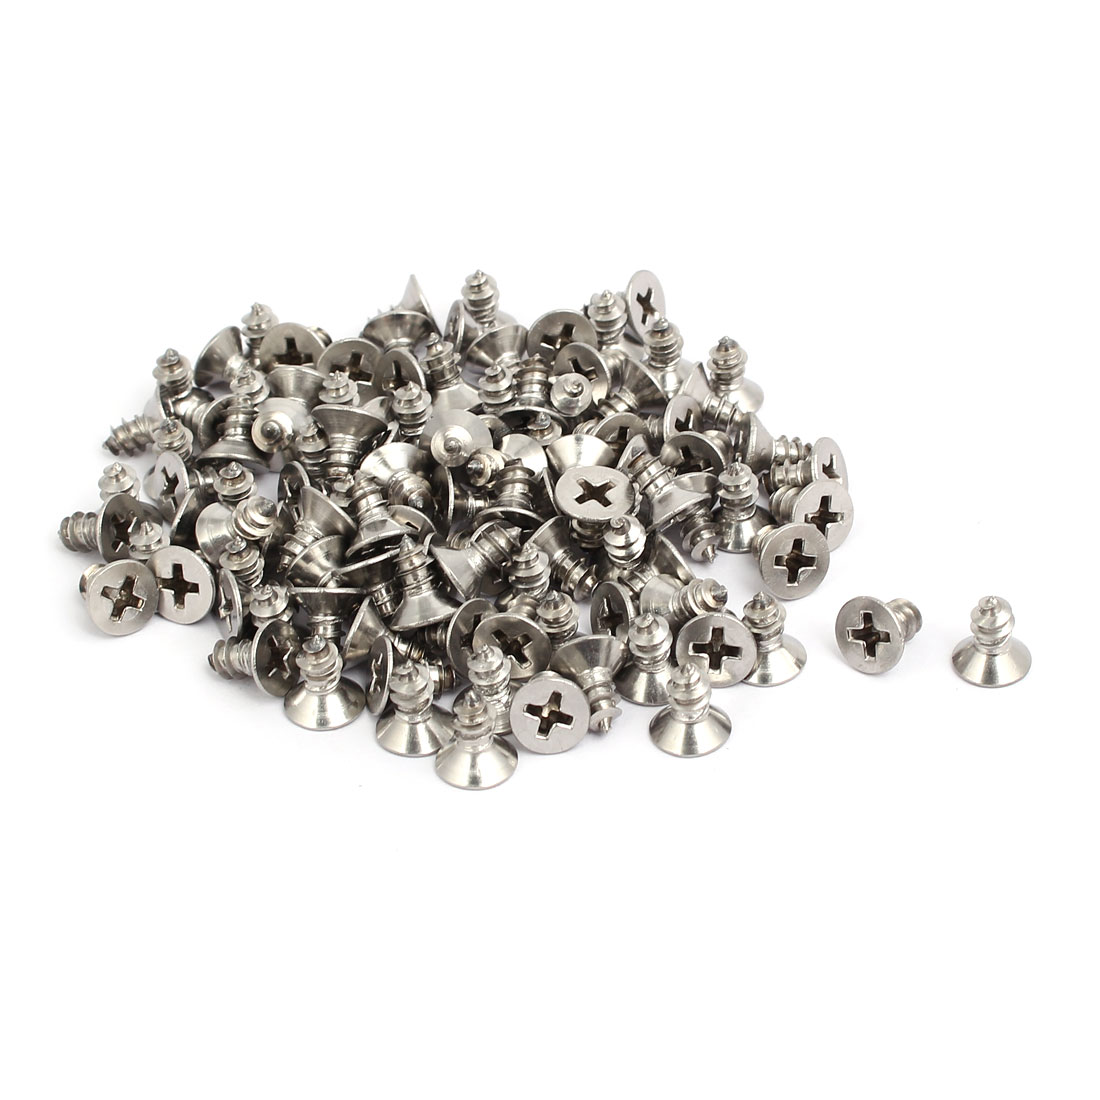 M5x10mm 304 Stainless Steel Phillips Drive Flat Head Self Tapping Screws 100pcs